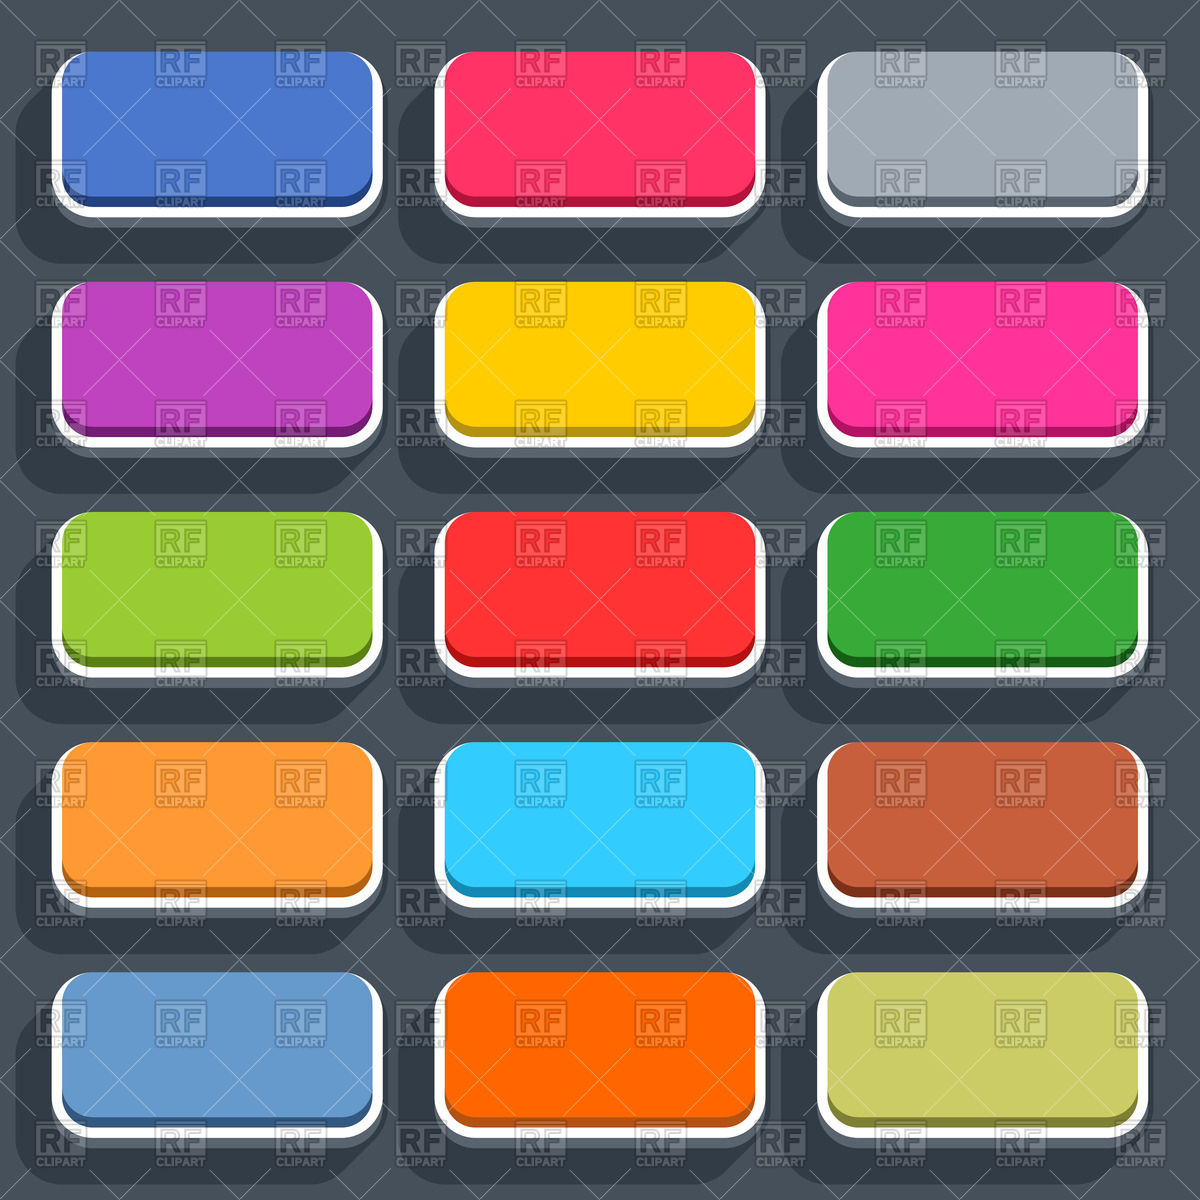 Rectangle Flat Style 3d Buttons With Rounded Corners Download Royalty